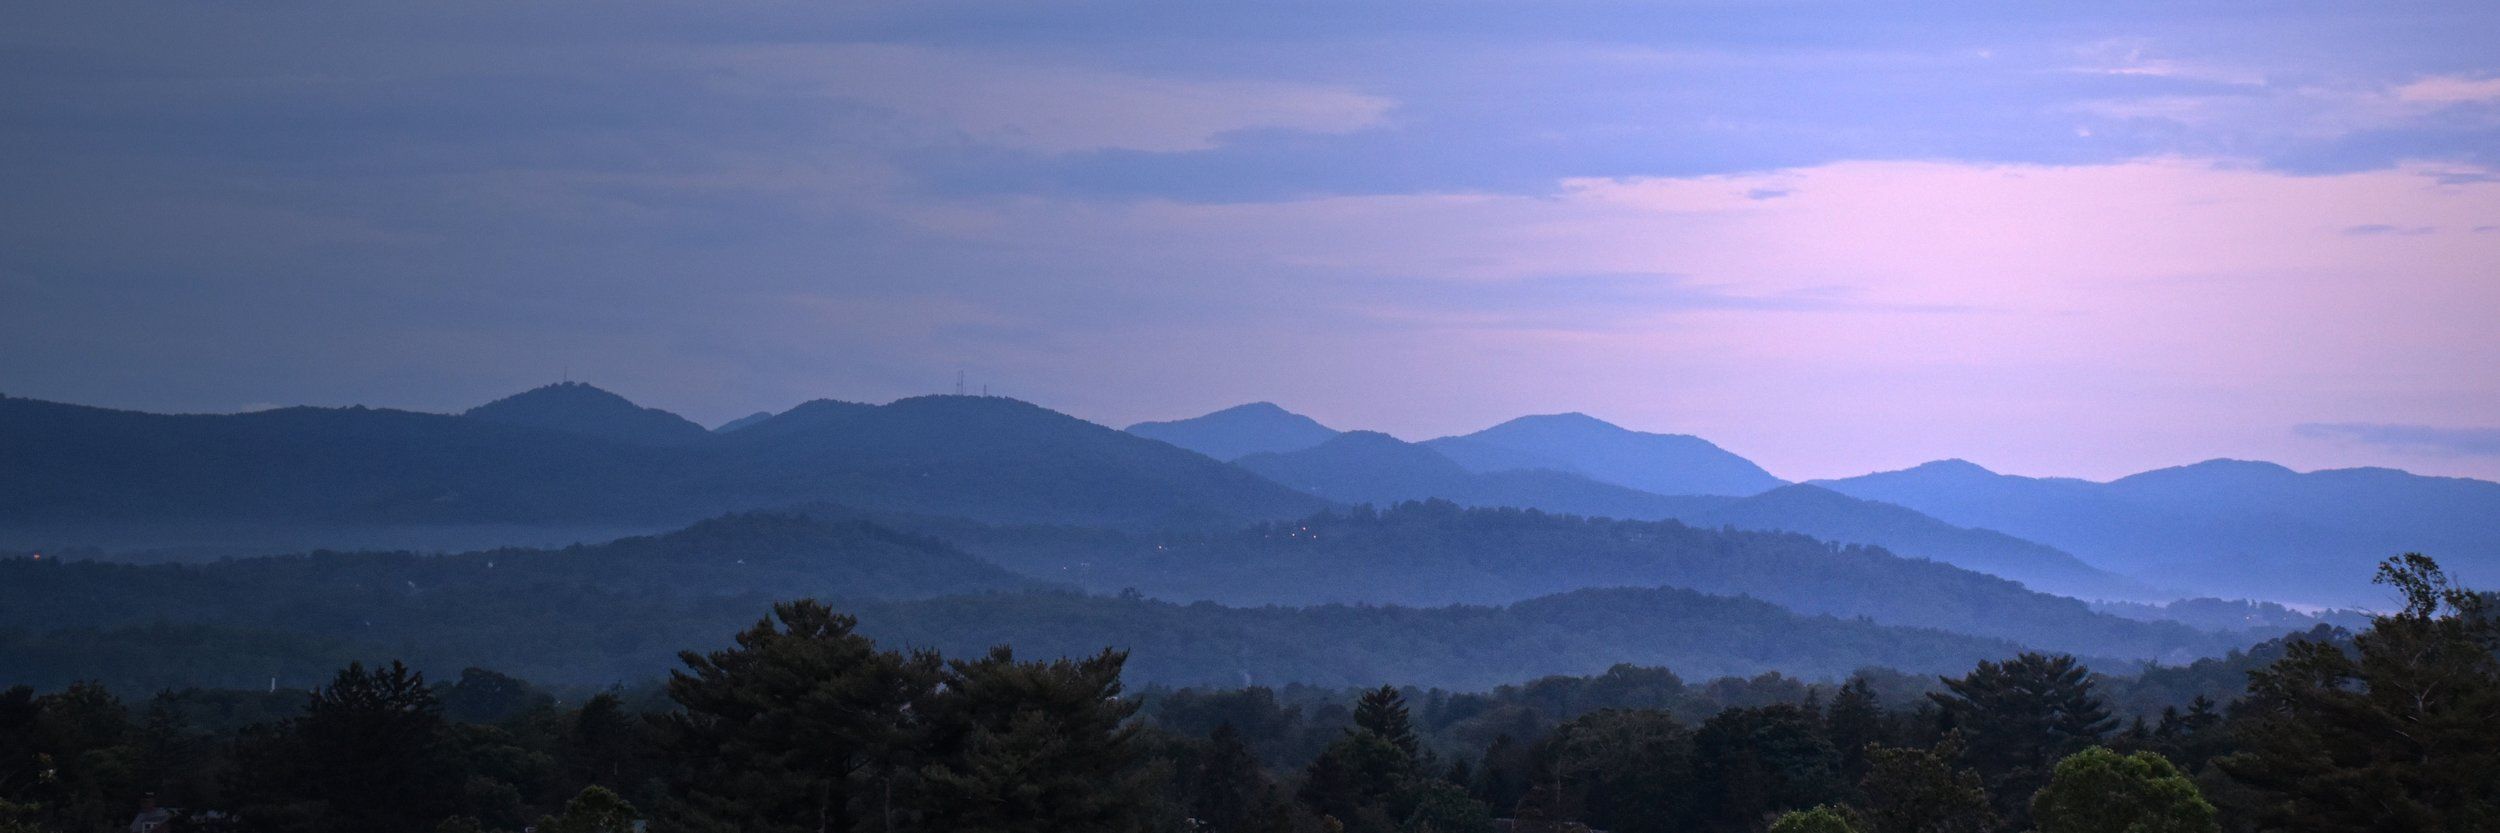 The Great SmokY Mountains of western north carolina - from asheville, nc - ultimate destination for mountain wedding ceremonies and events